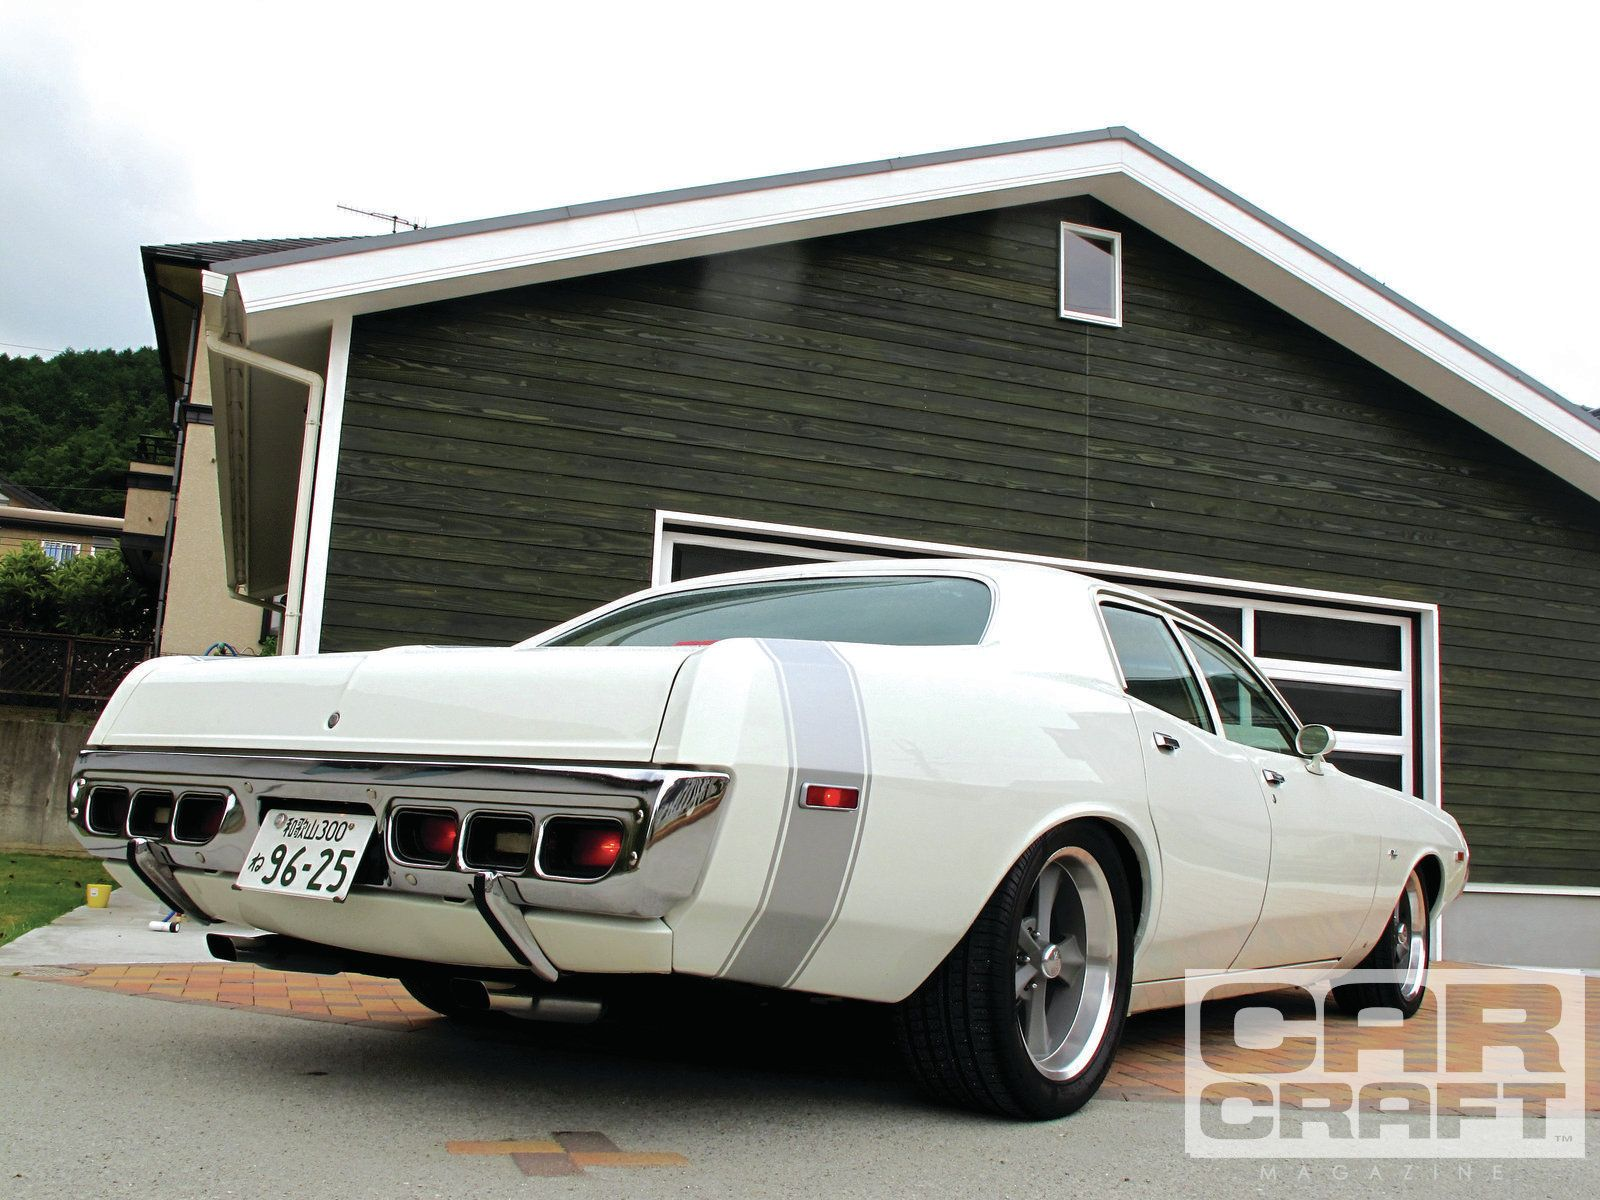 Just A Car Guy: the 72 Coronet in Japan, Tsutomu Ikeda's 4